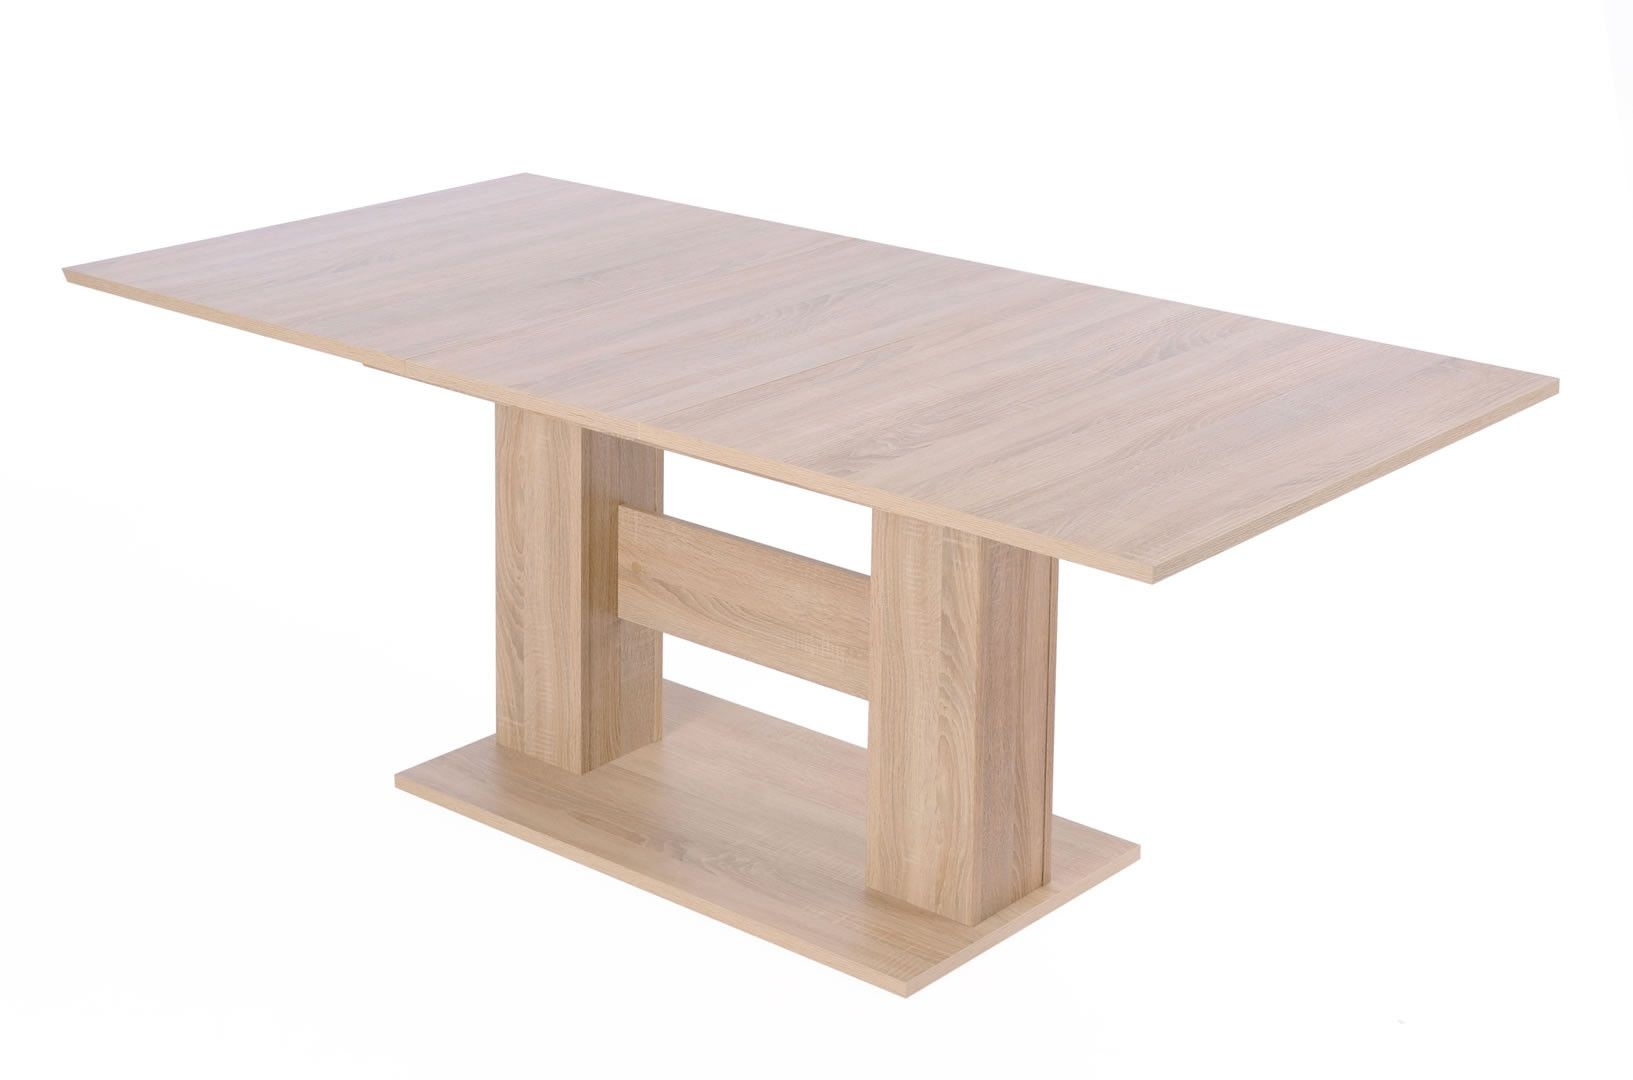 Tables rallonge table de salle manger avec allonge 140 180 cm dingo trocity - Table 140 cm avec rallonge ...